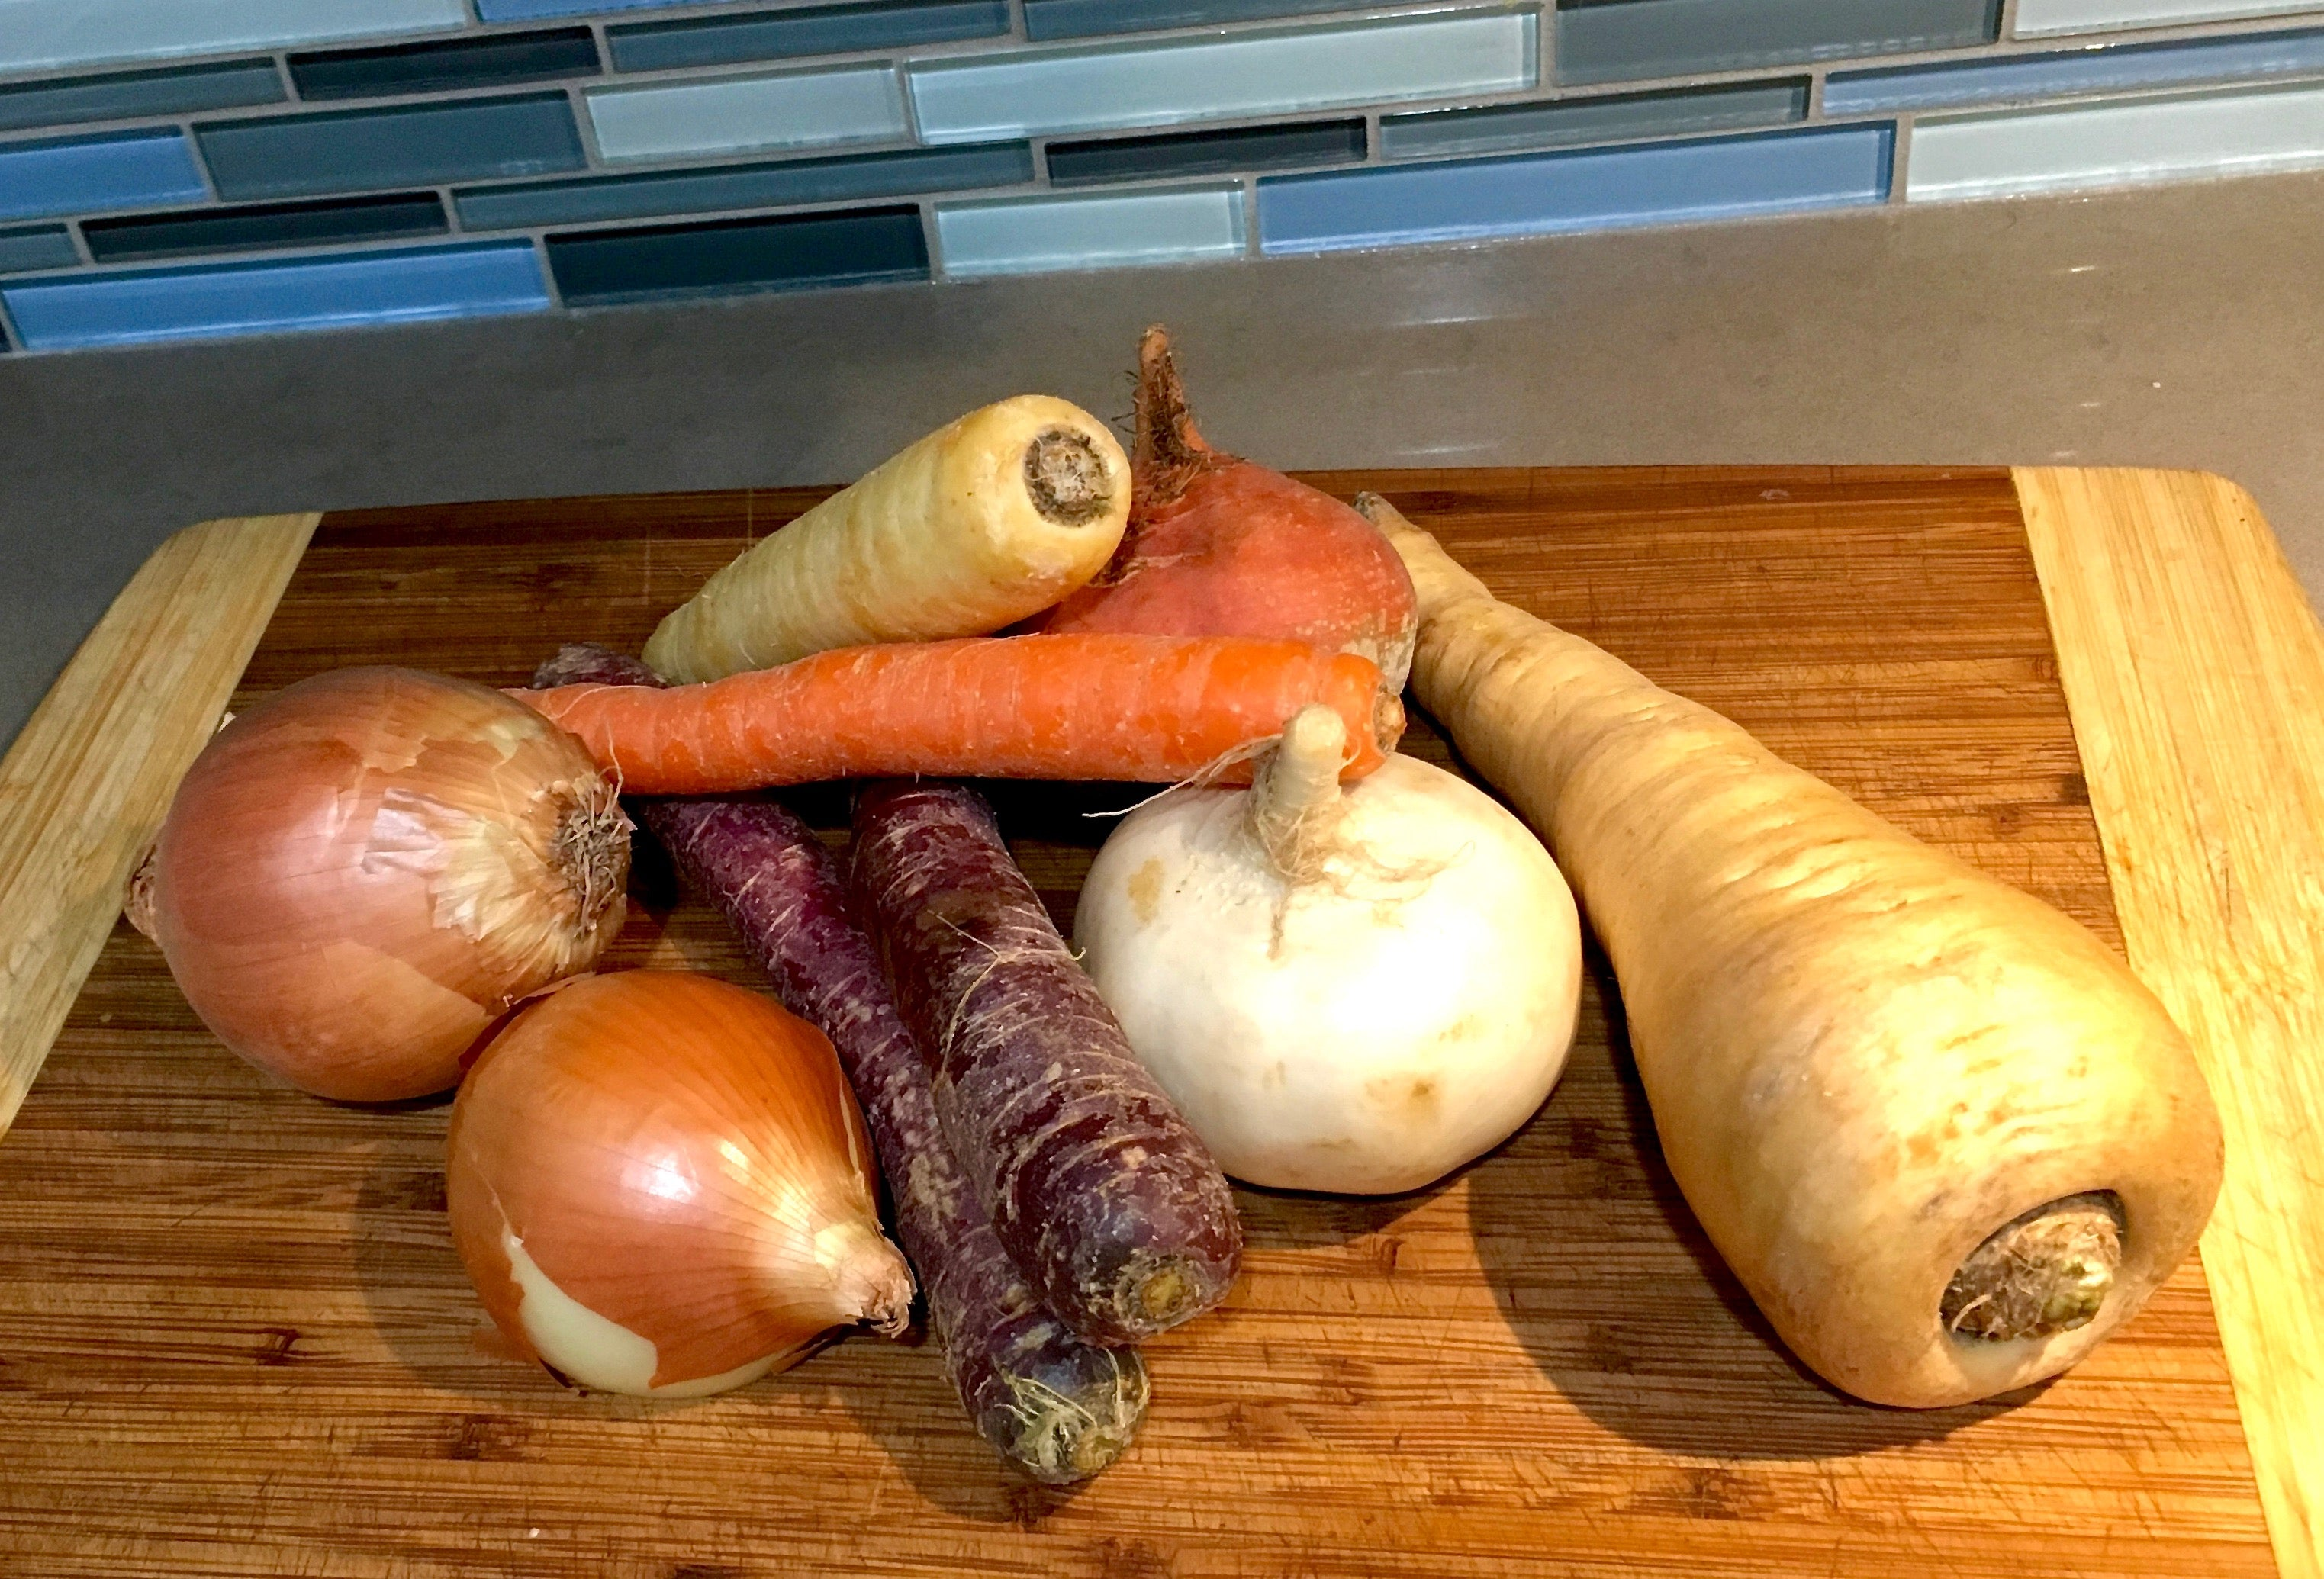 purple carrots, yellow onions, and other fresh produce on cutting board